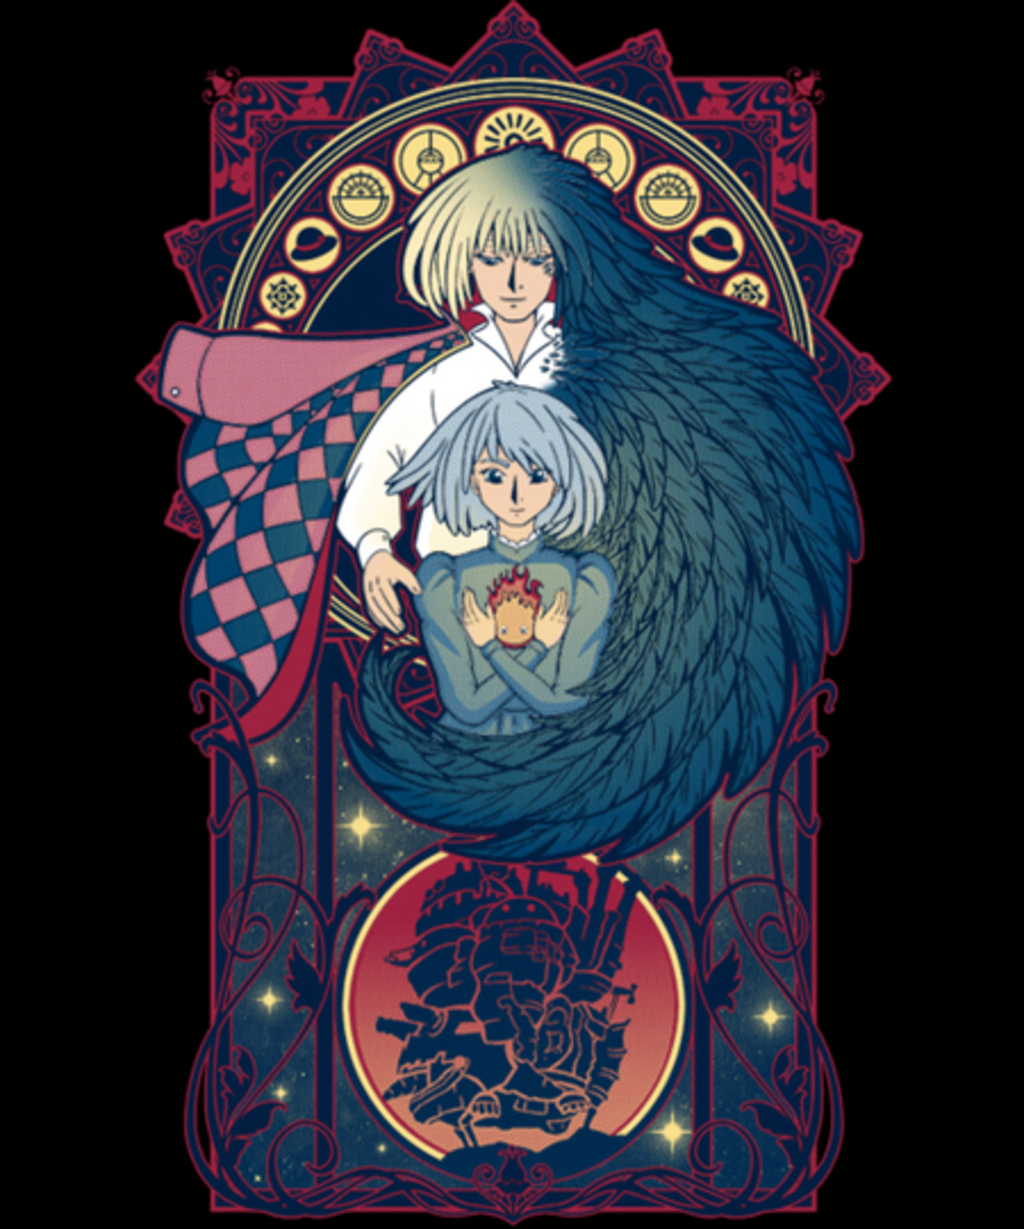 Qwertee: Art of a Moving Castle